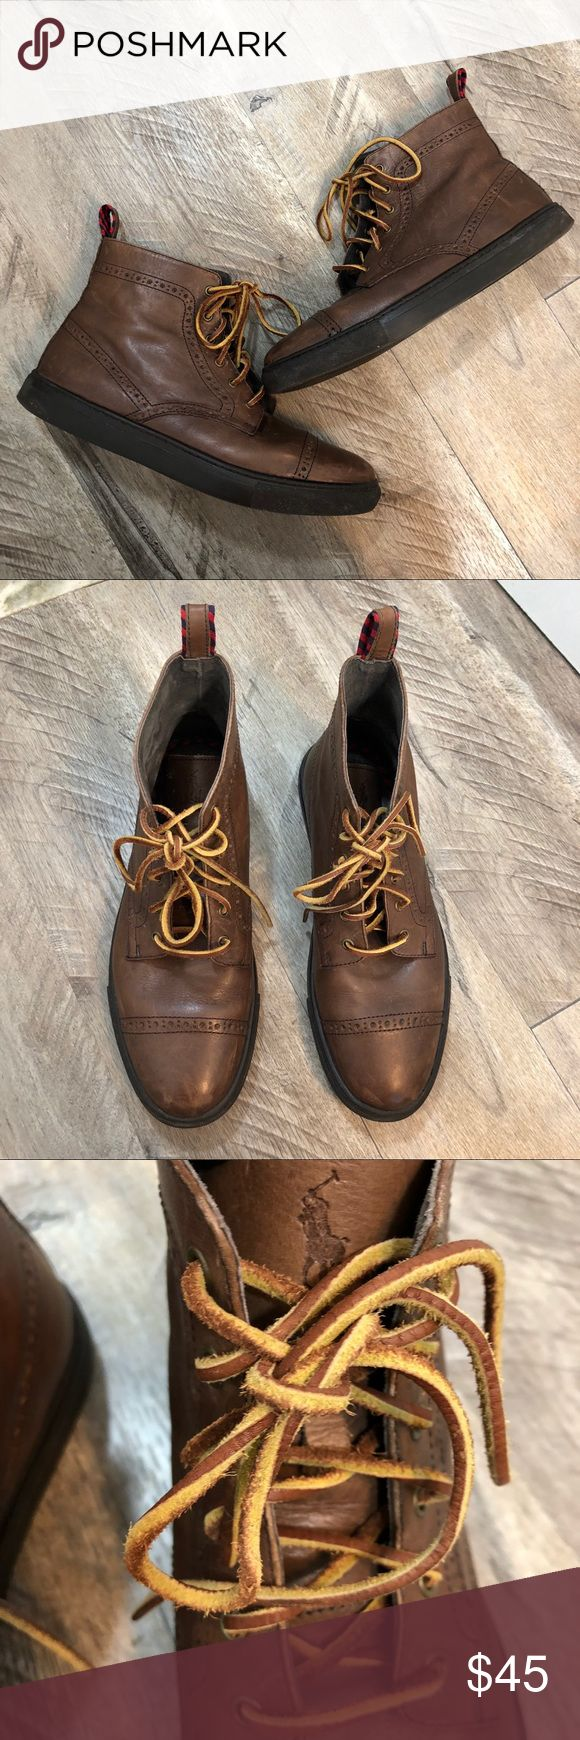 Polo Ralph Lauren Boots Lightly used in great condition!  Polo Ralph Lauren brown boots. Polo by Ralph Lauren Shoes Boots